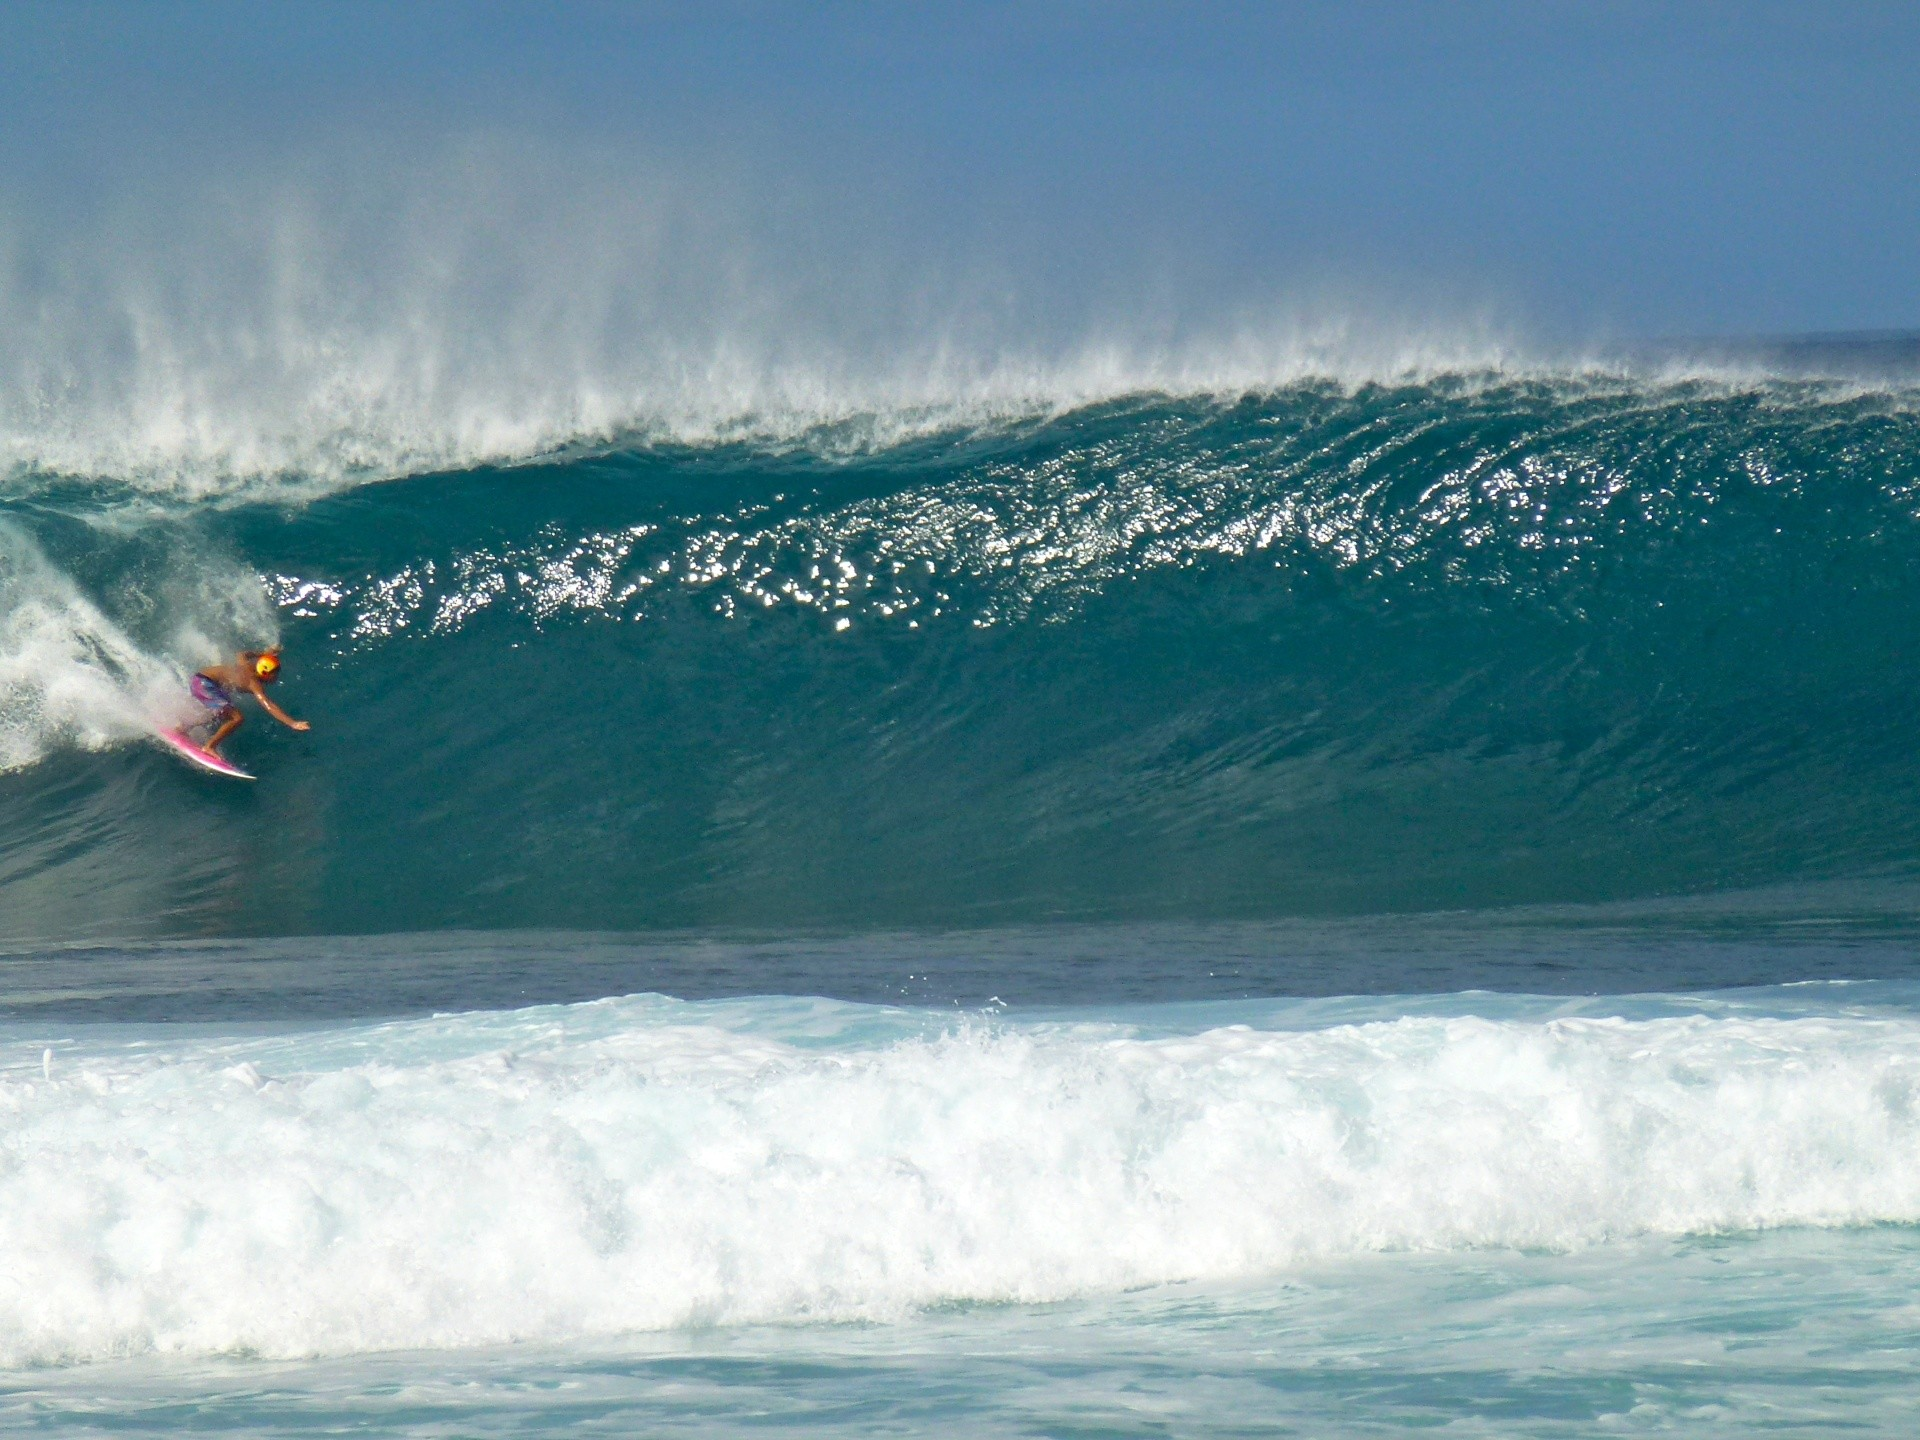 EssexBoy's photo of Pipeline & Backdoor